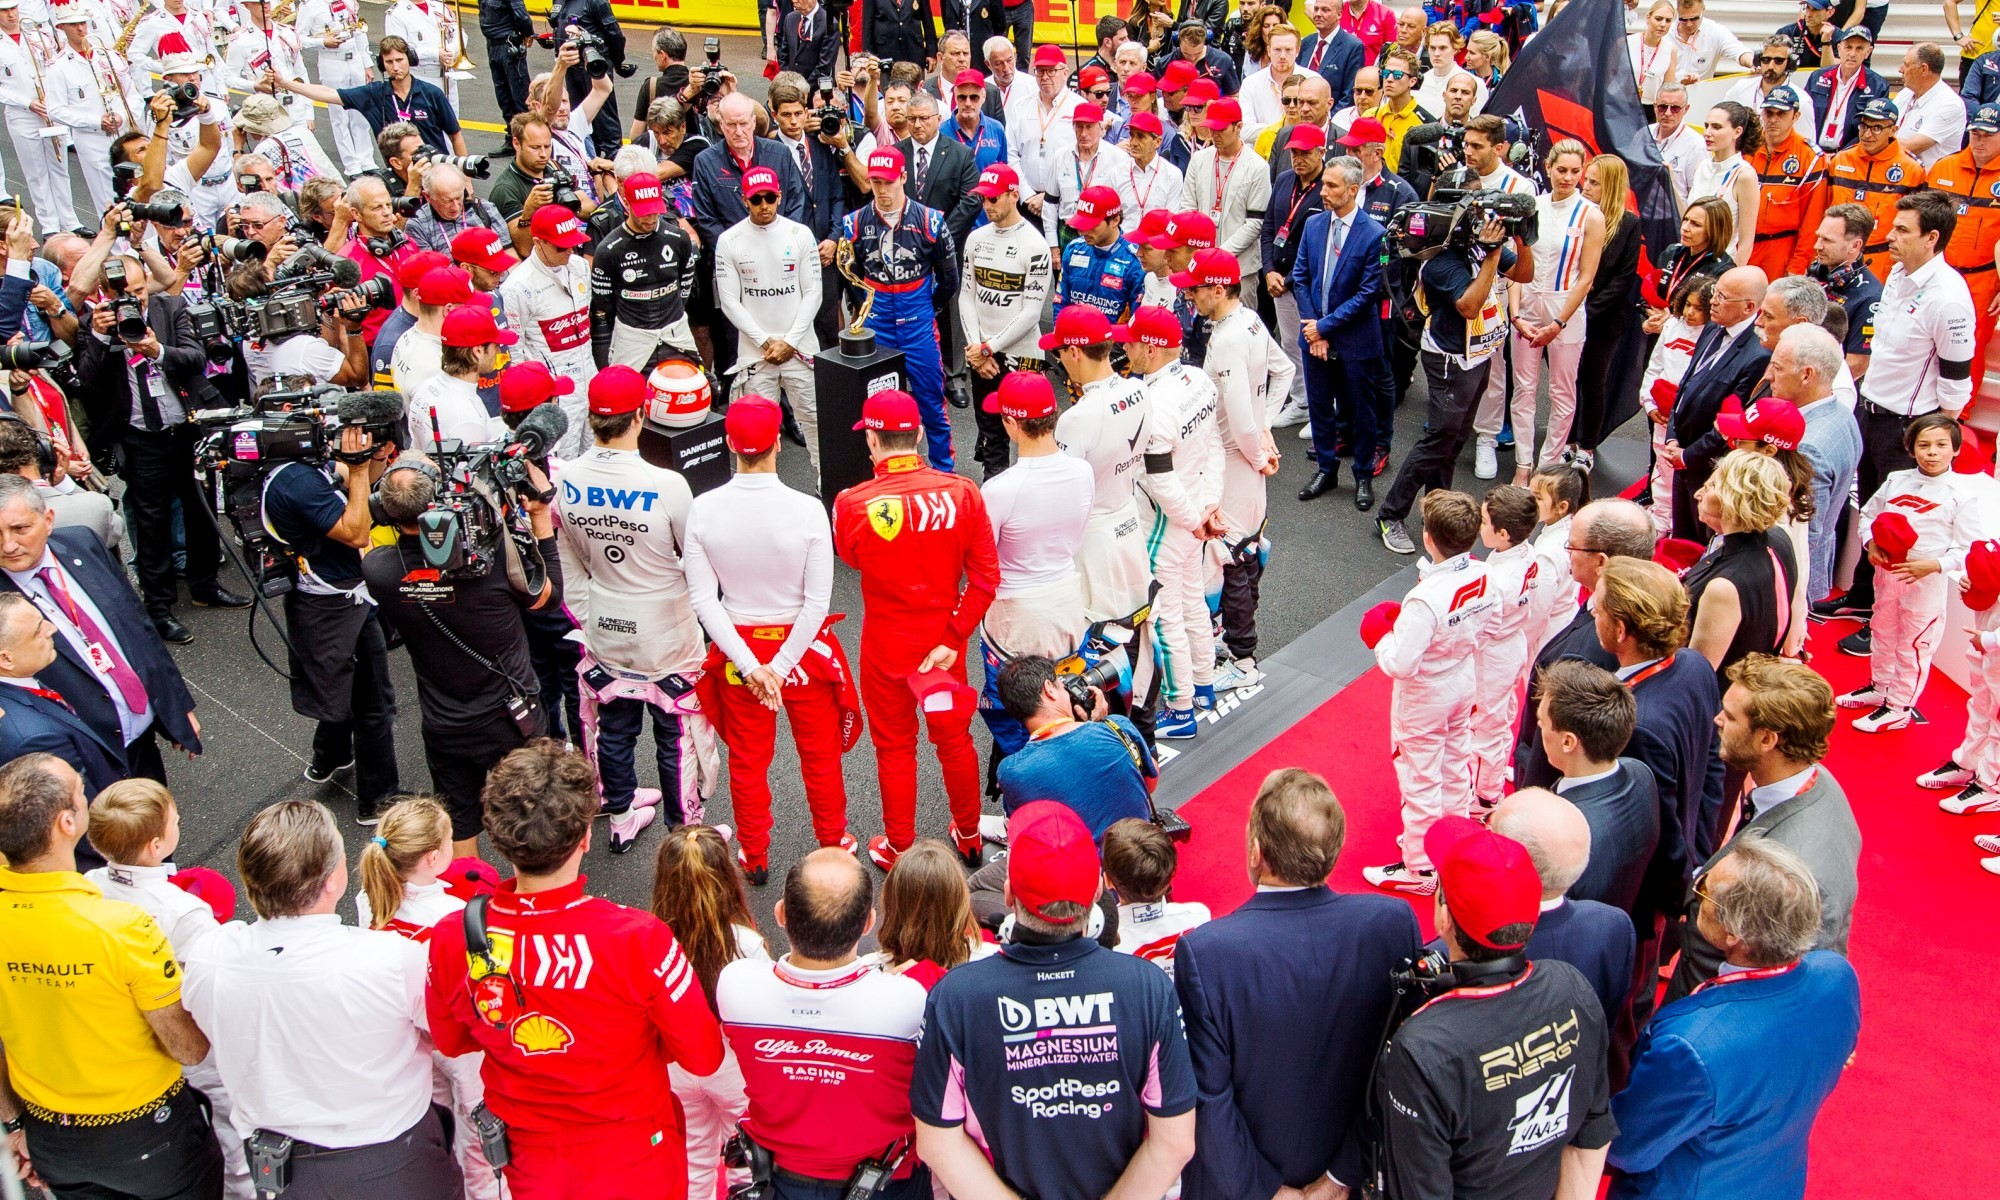 A ring of honour for Niki Lauda